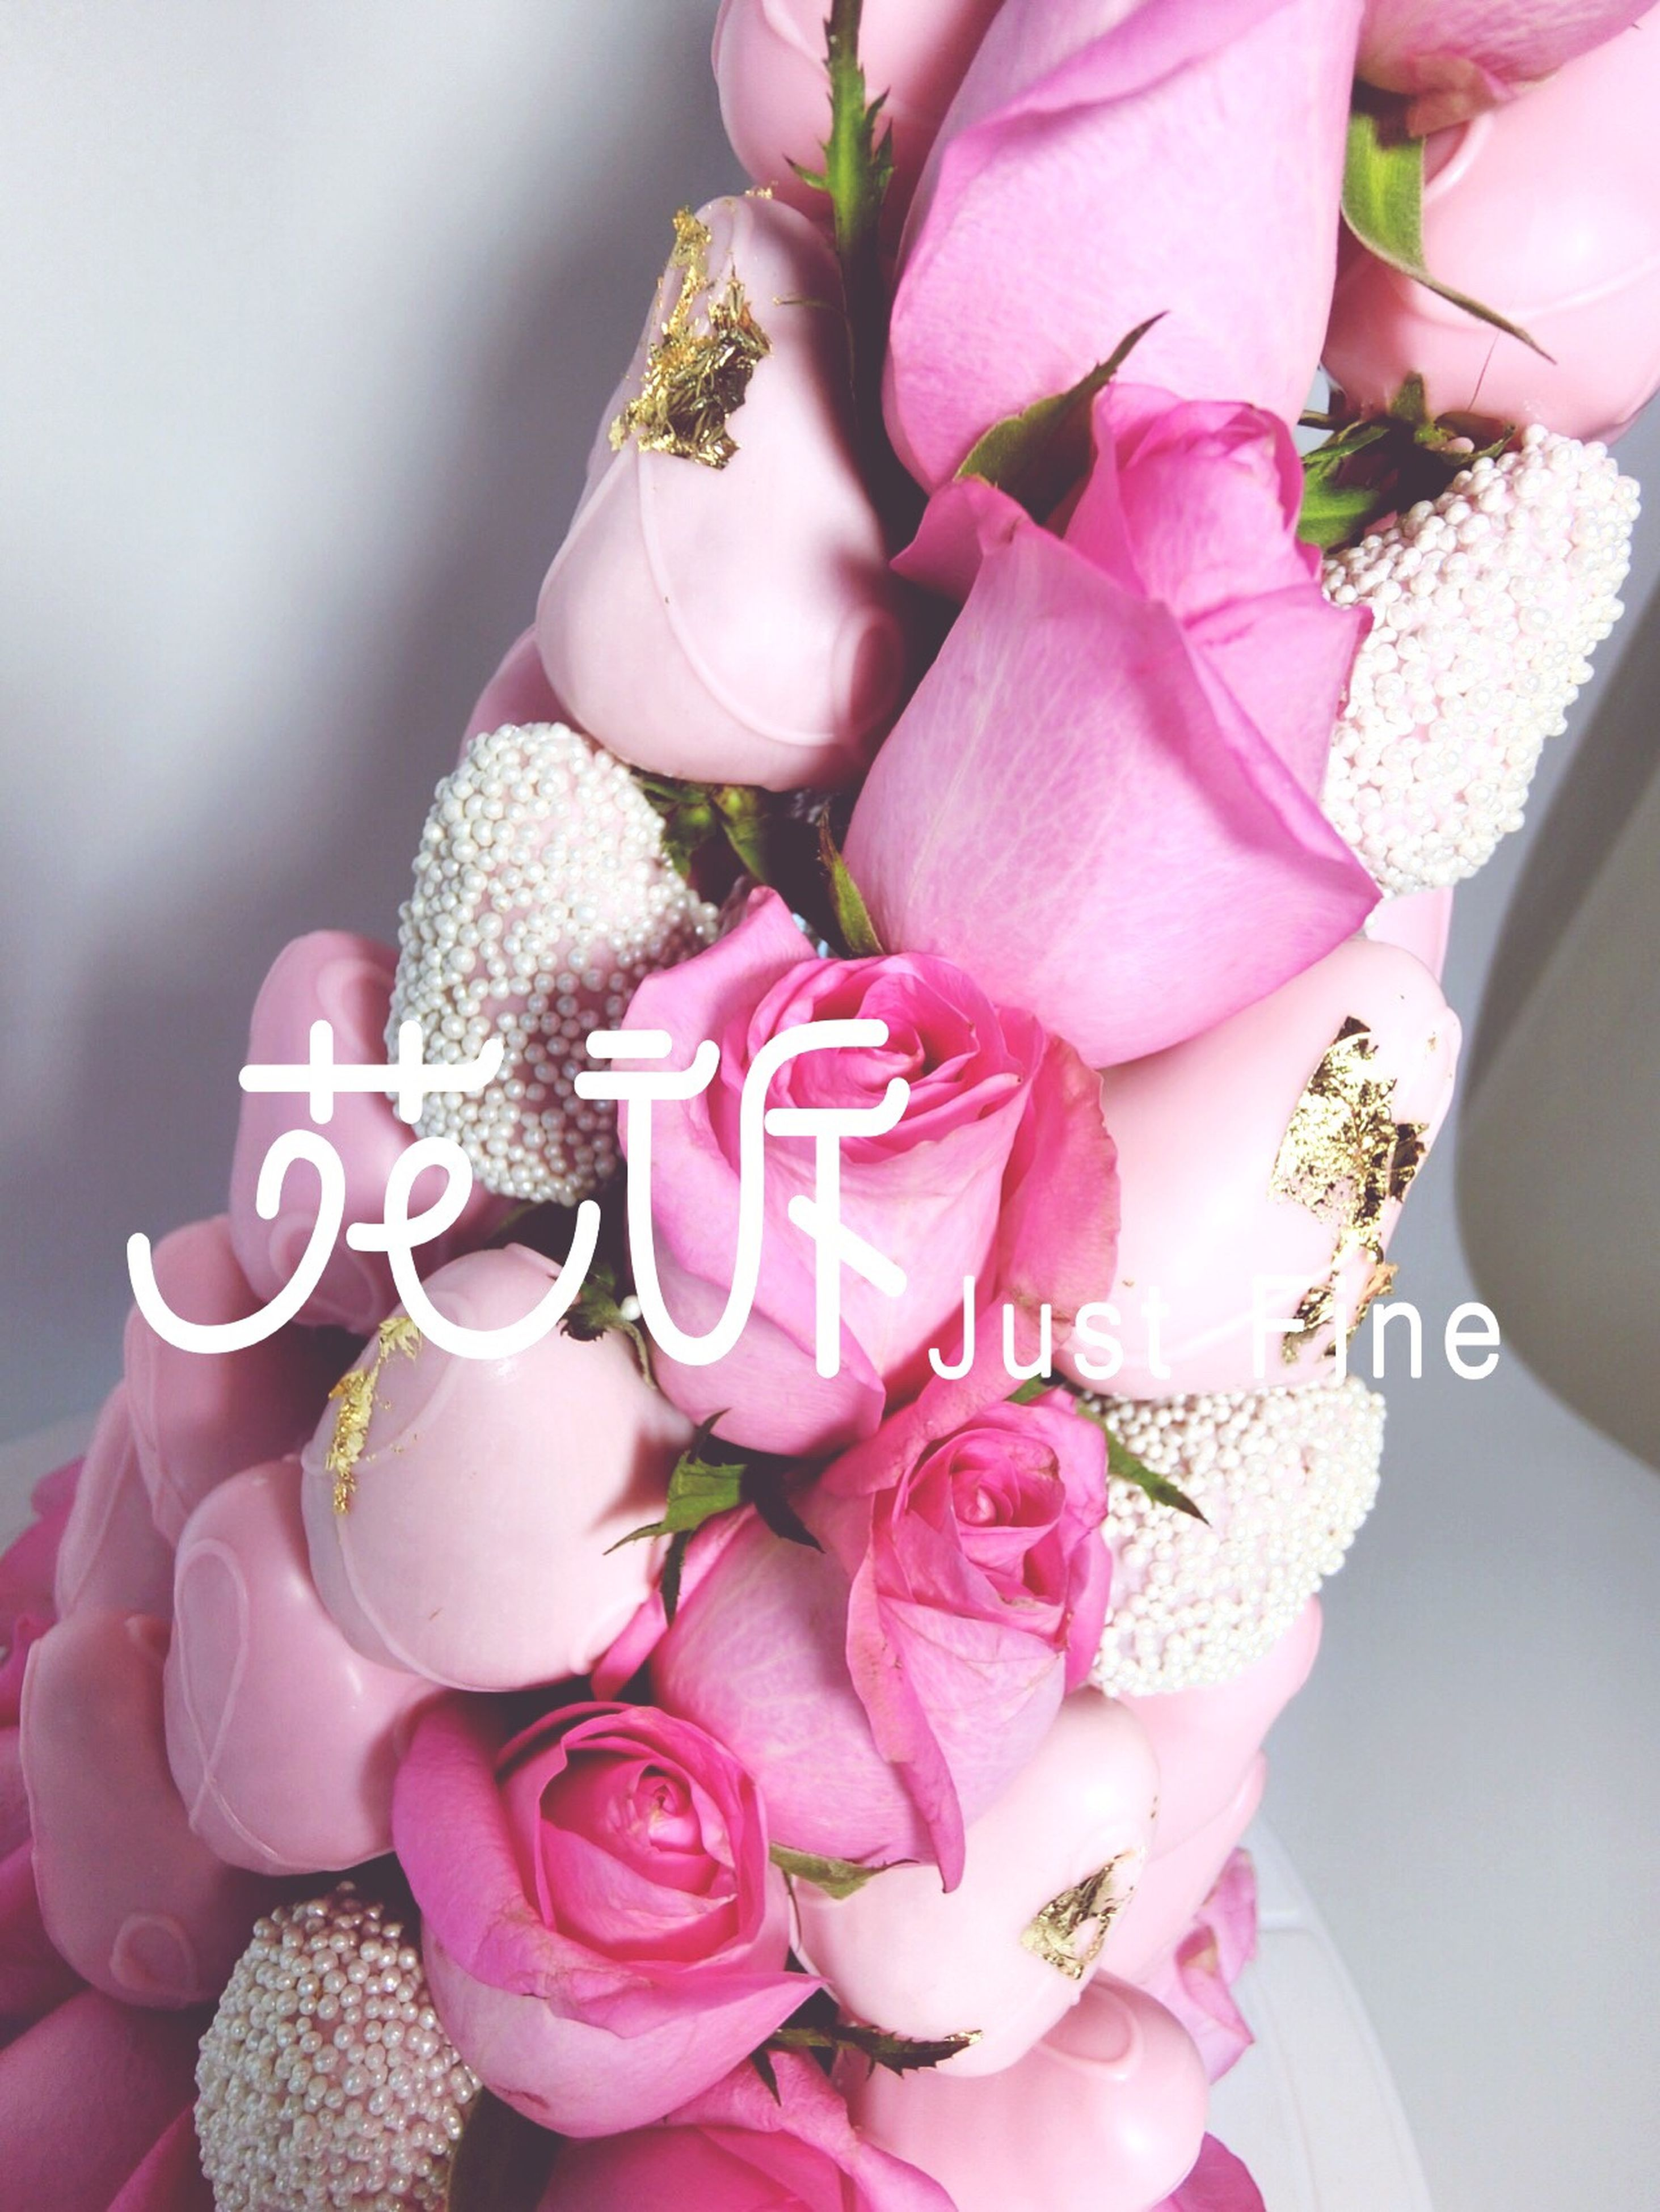 flower, pink color, flower head, ribbon - sewing item, fragility, bouquet, gift, freshness, no people, close-up, indoors, flower arrangement, day